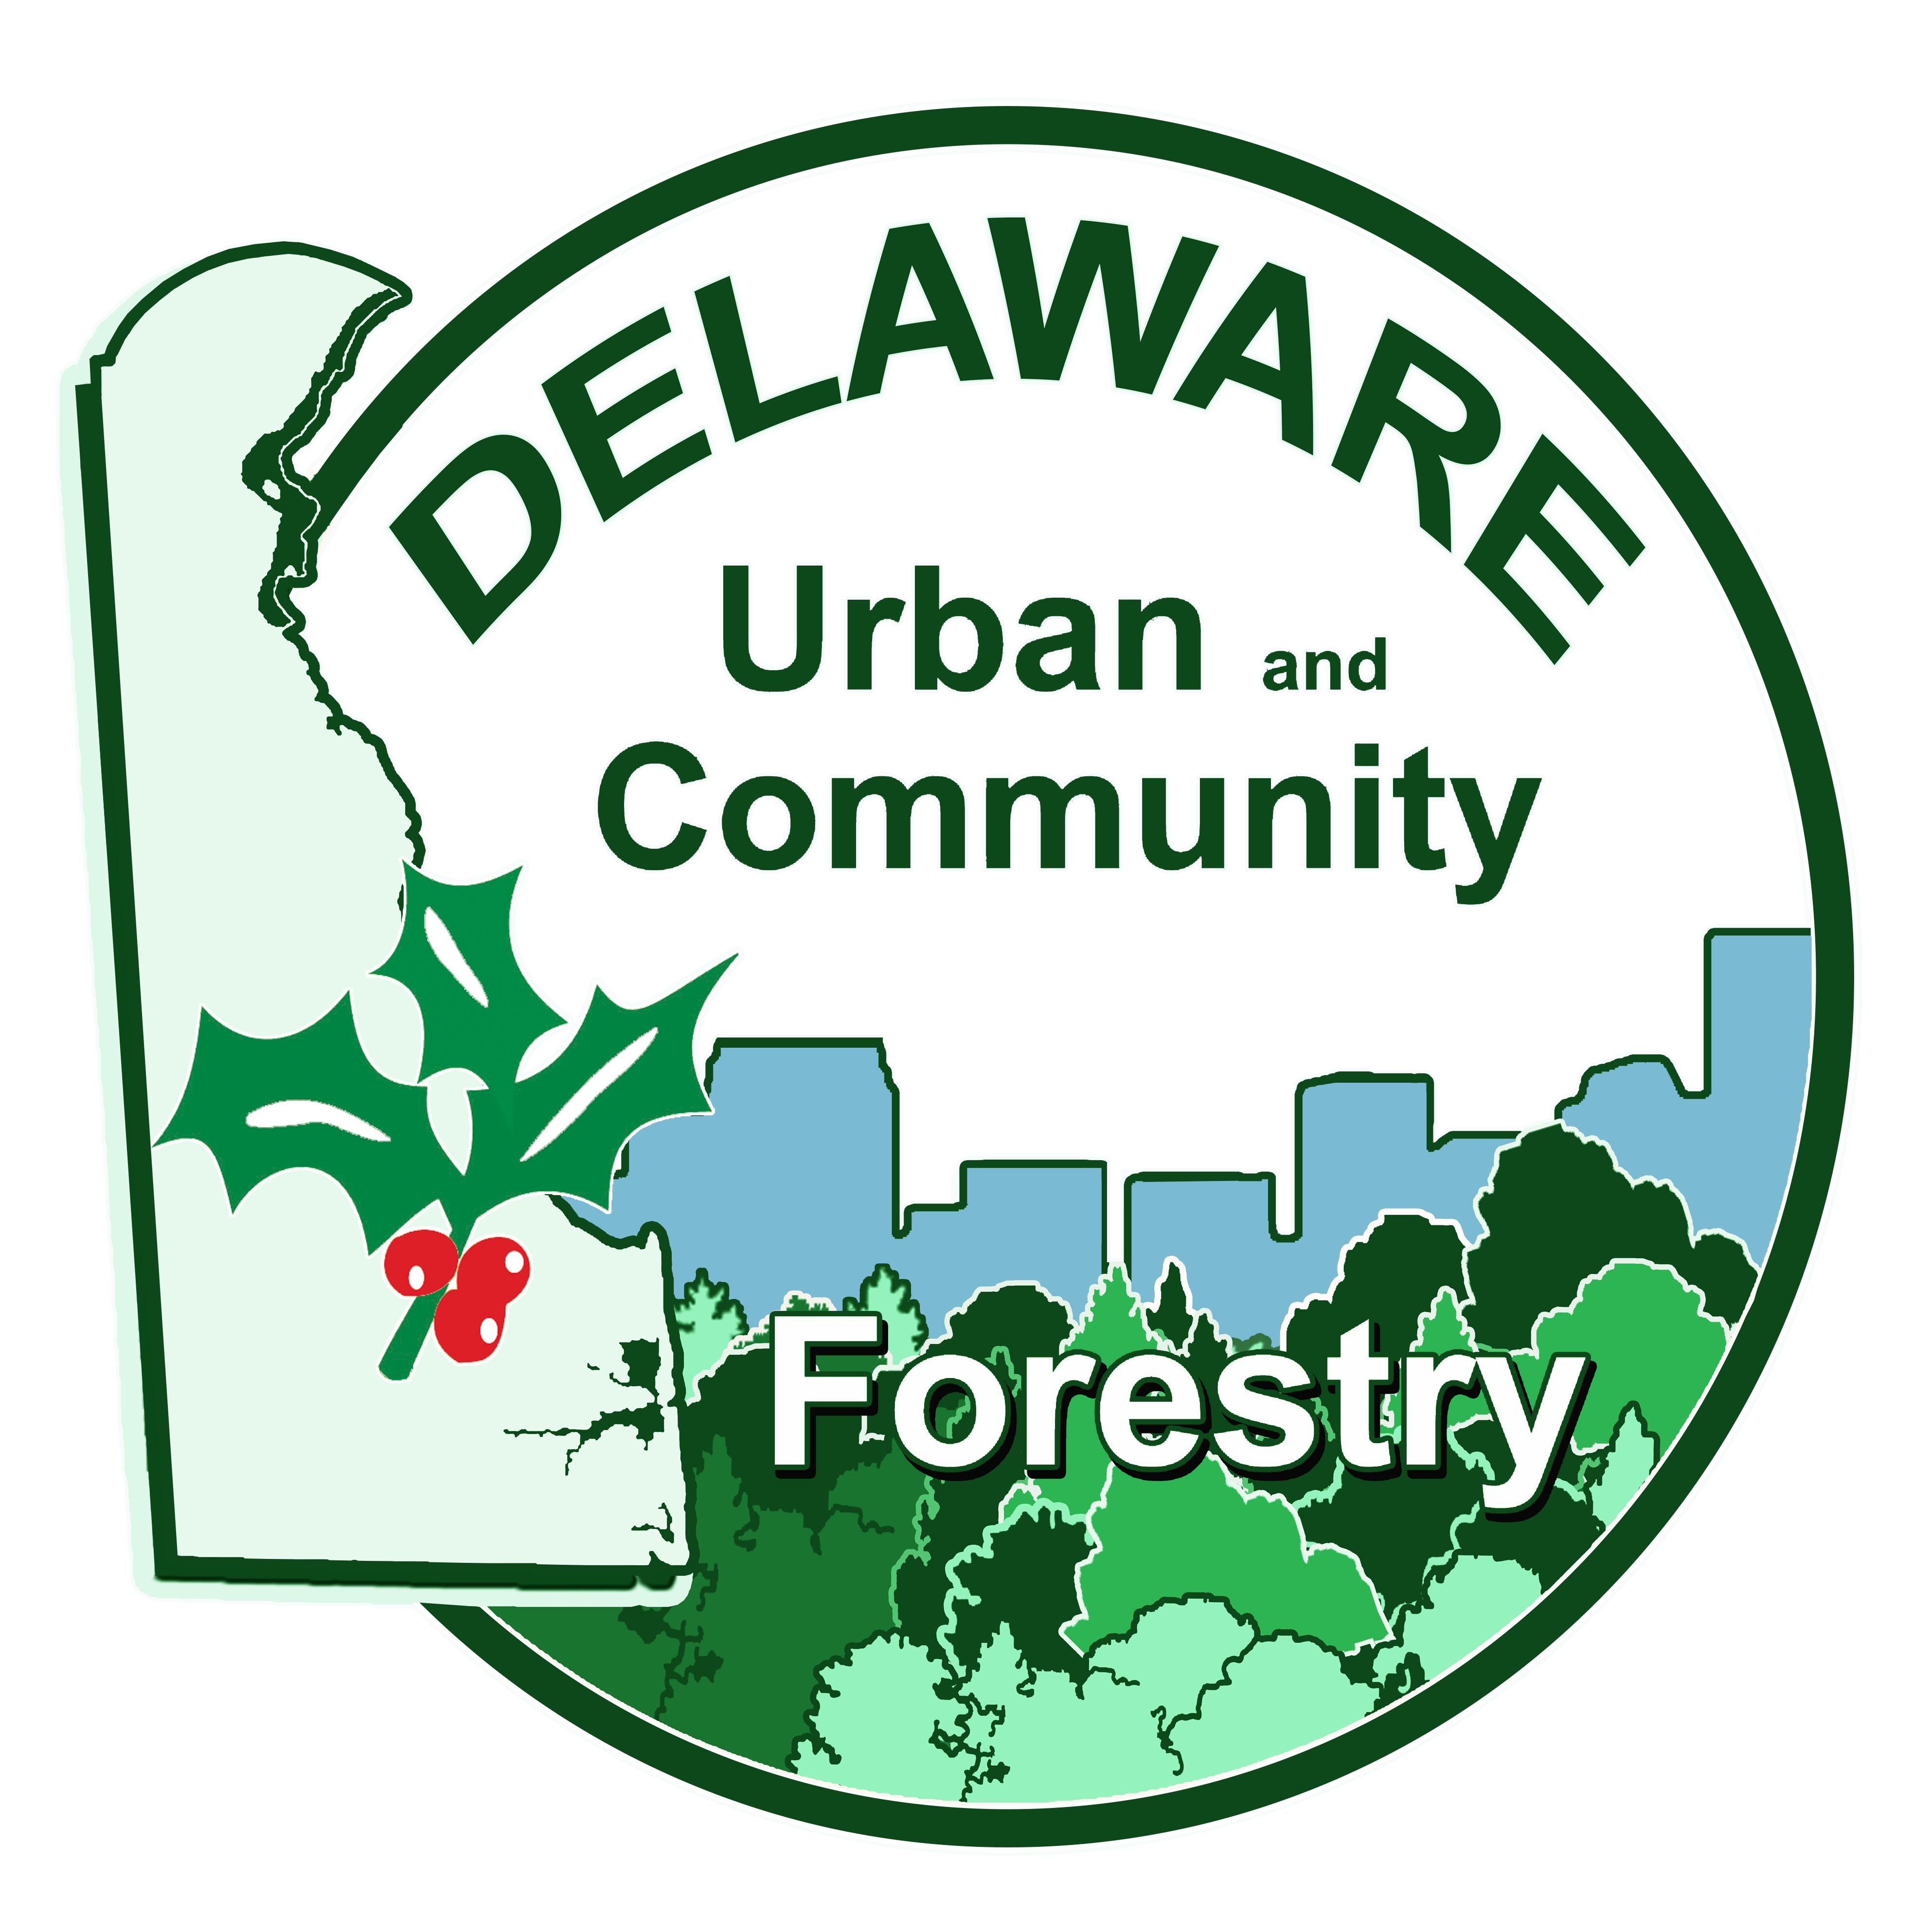 Delaware Urban and Community Forestry